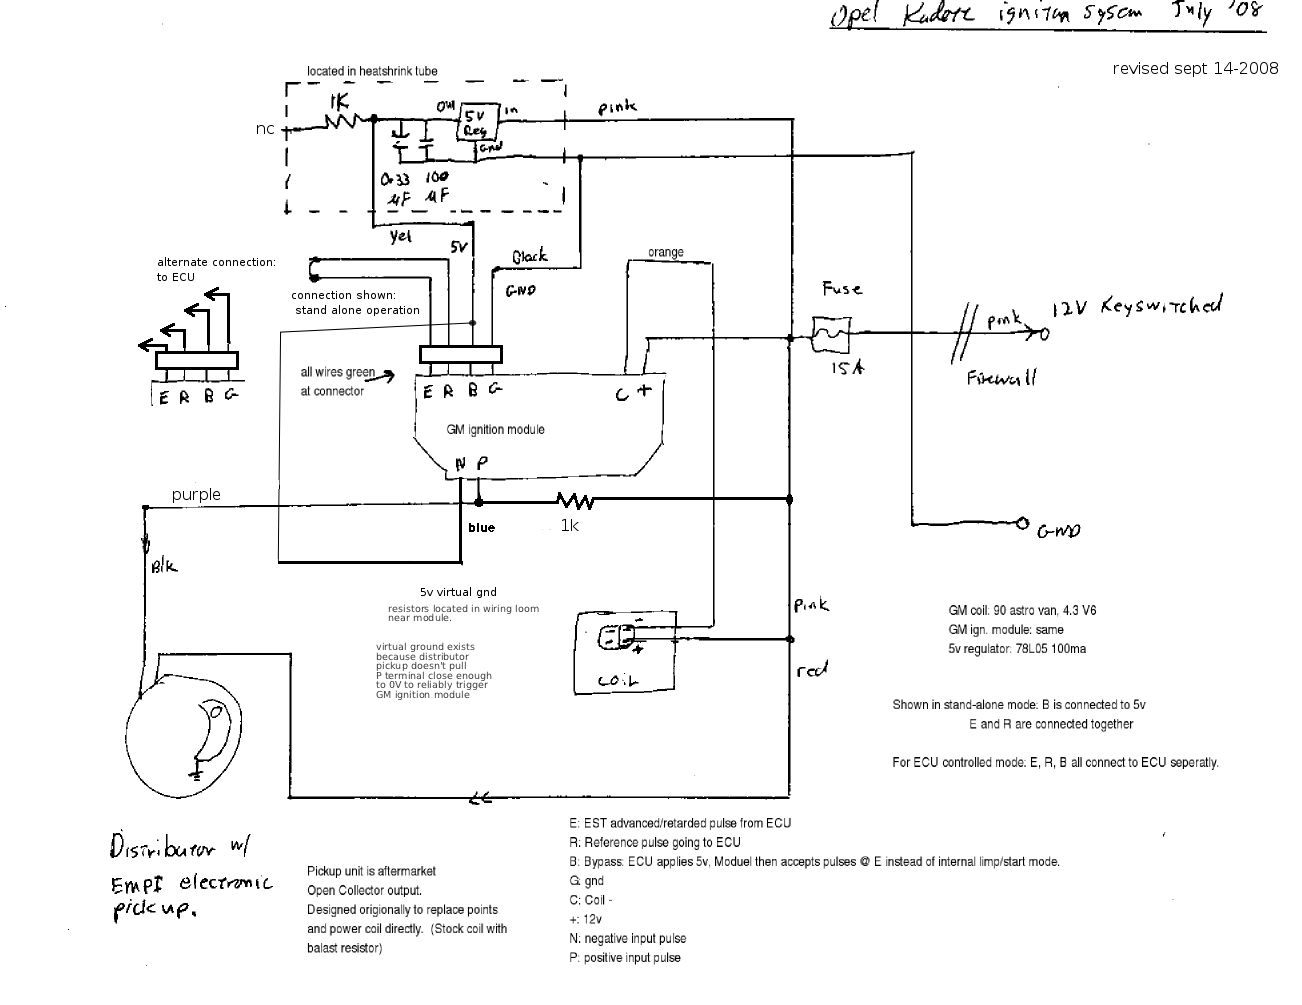 cpt wiring diagram 747 ecu hookup fuel pump pwr 12v keyswitched speed temperature ign pulses 5v solar panel inverter circuit diagram